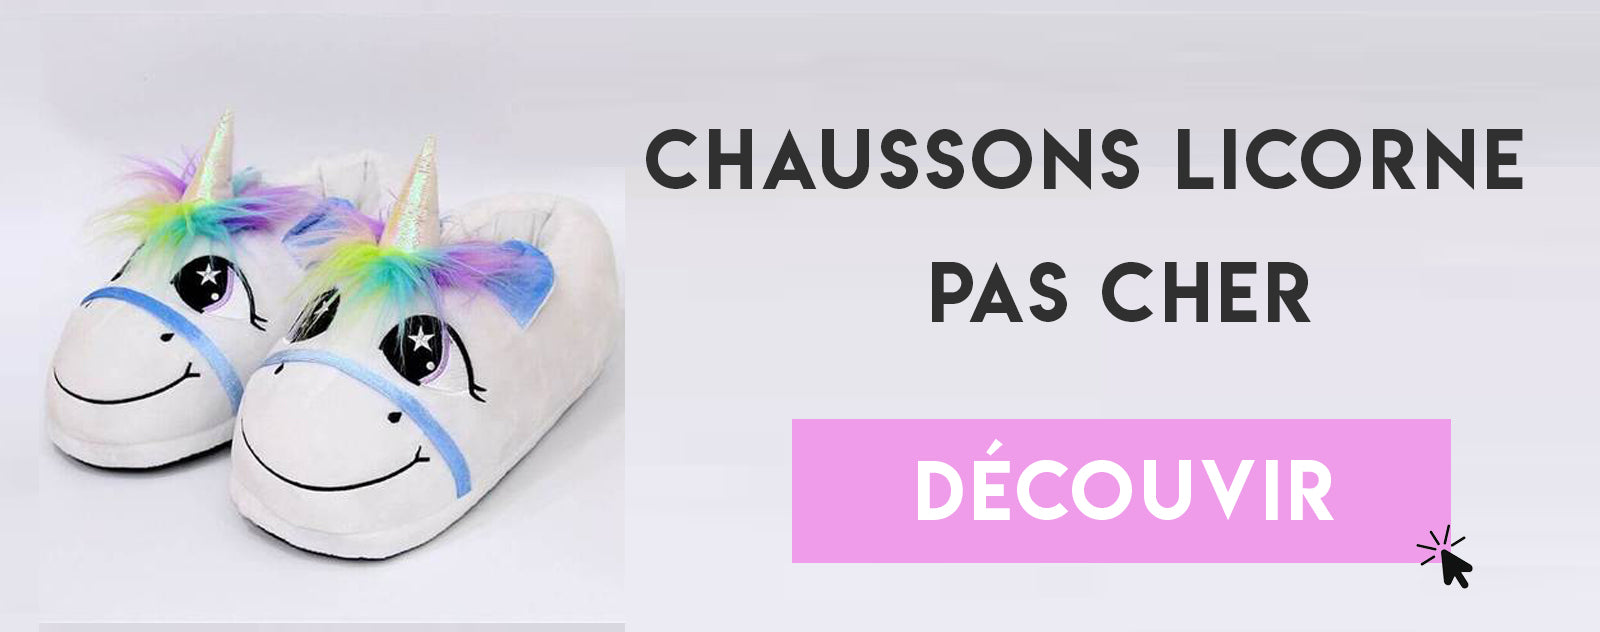 chaussons licorne les moins cher top 8